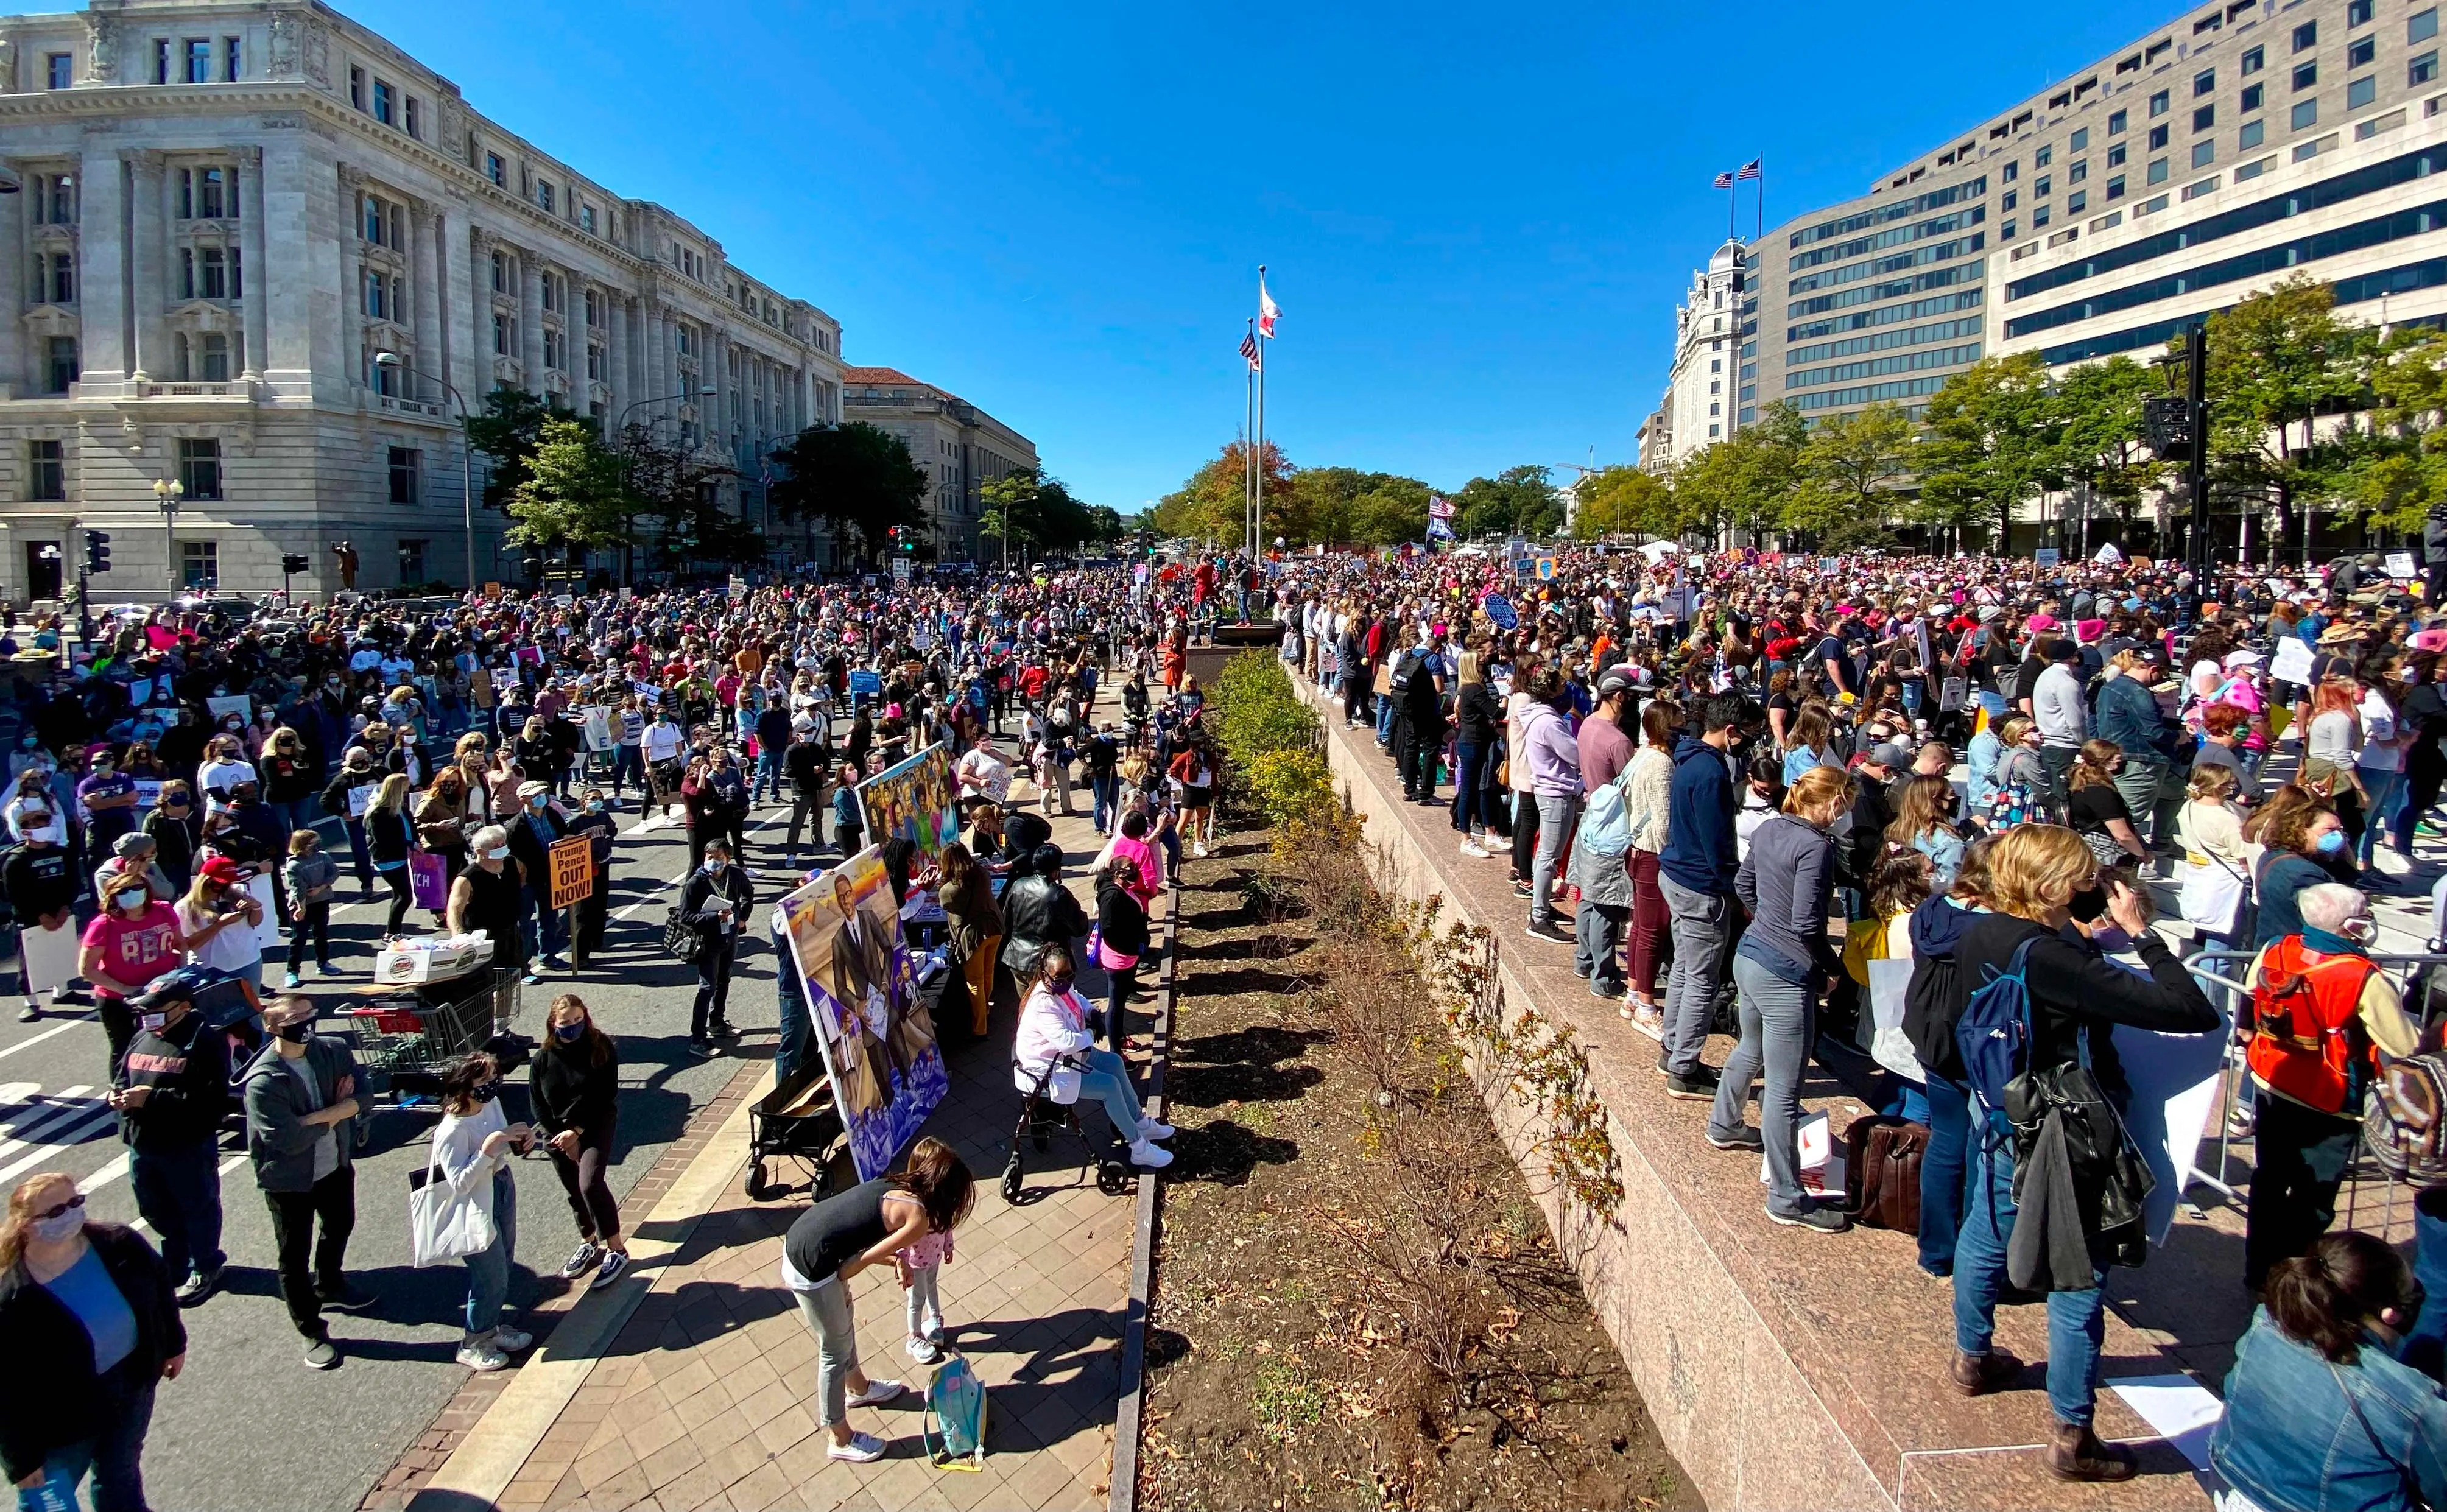 Demonstrators gather to take part in the nationwide Women's March on October 17, 2020, at Freedom Plaza in Washington, DC.